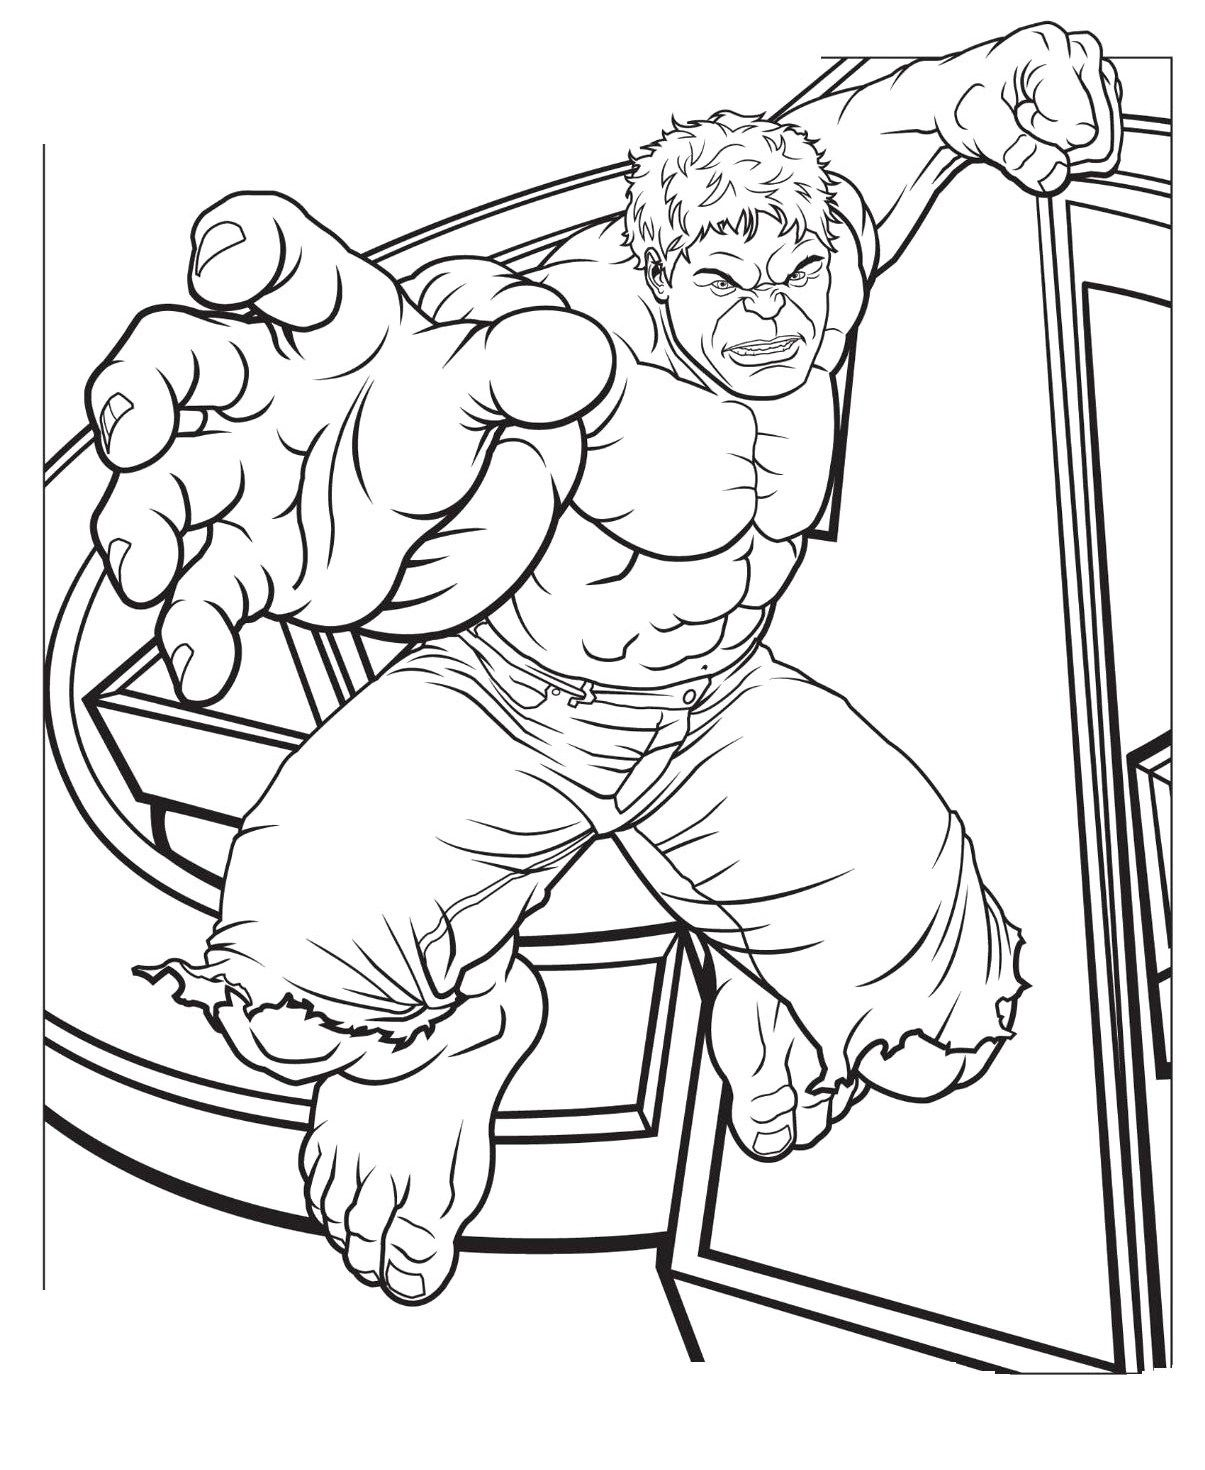 Hulk Jump Coloring Page | Colouring in! | Pinterest